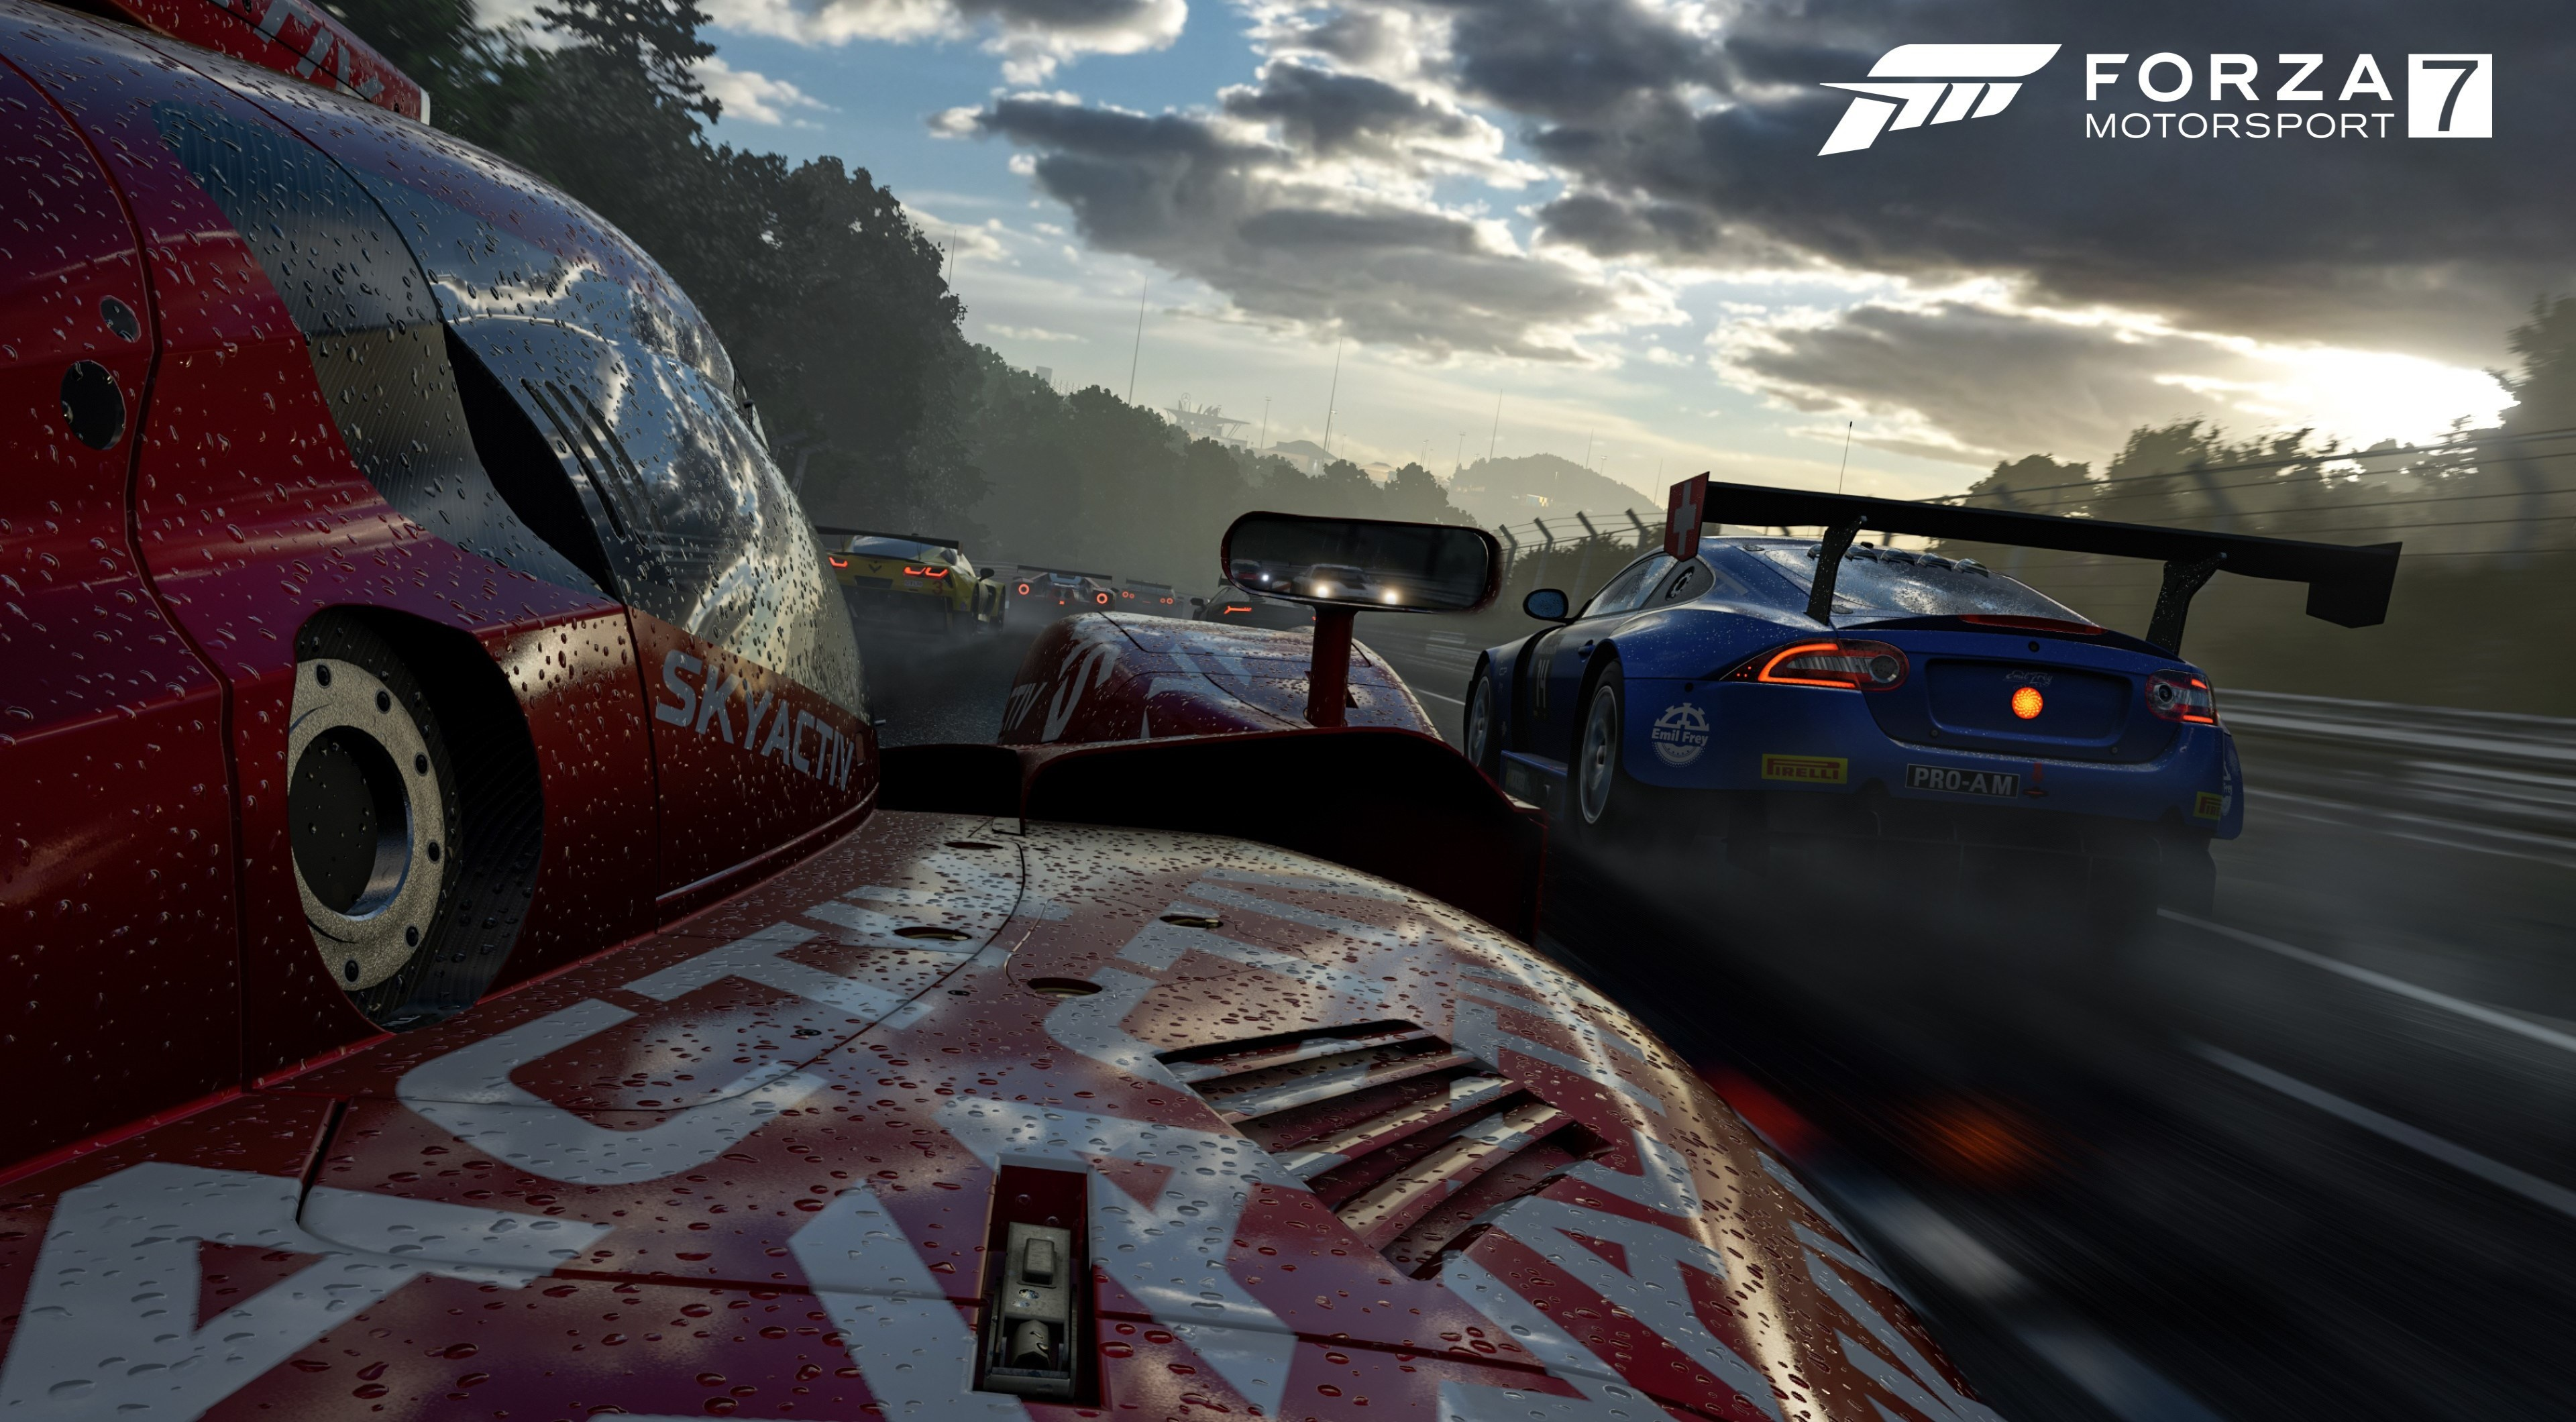 17 Forza Motorsport 7 HD Wallpapers Background Images 3840x2120